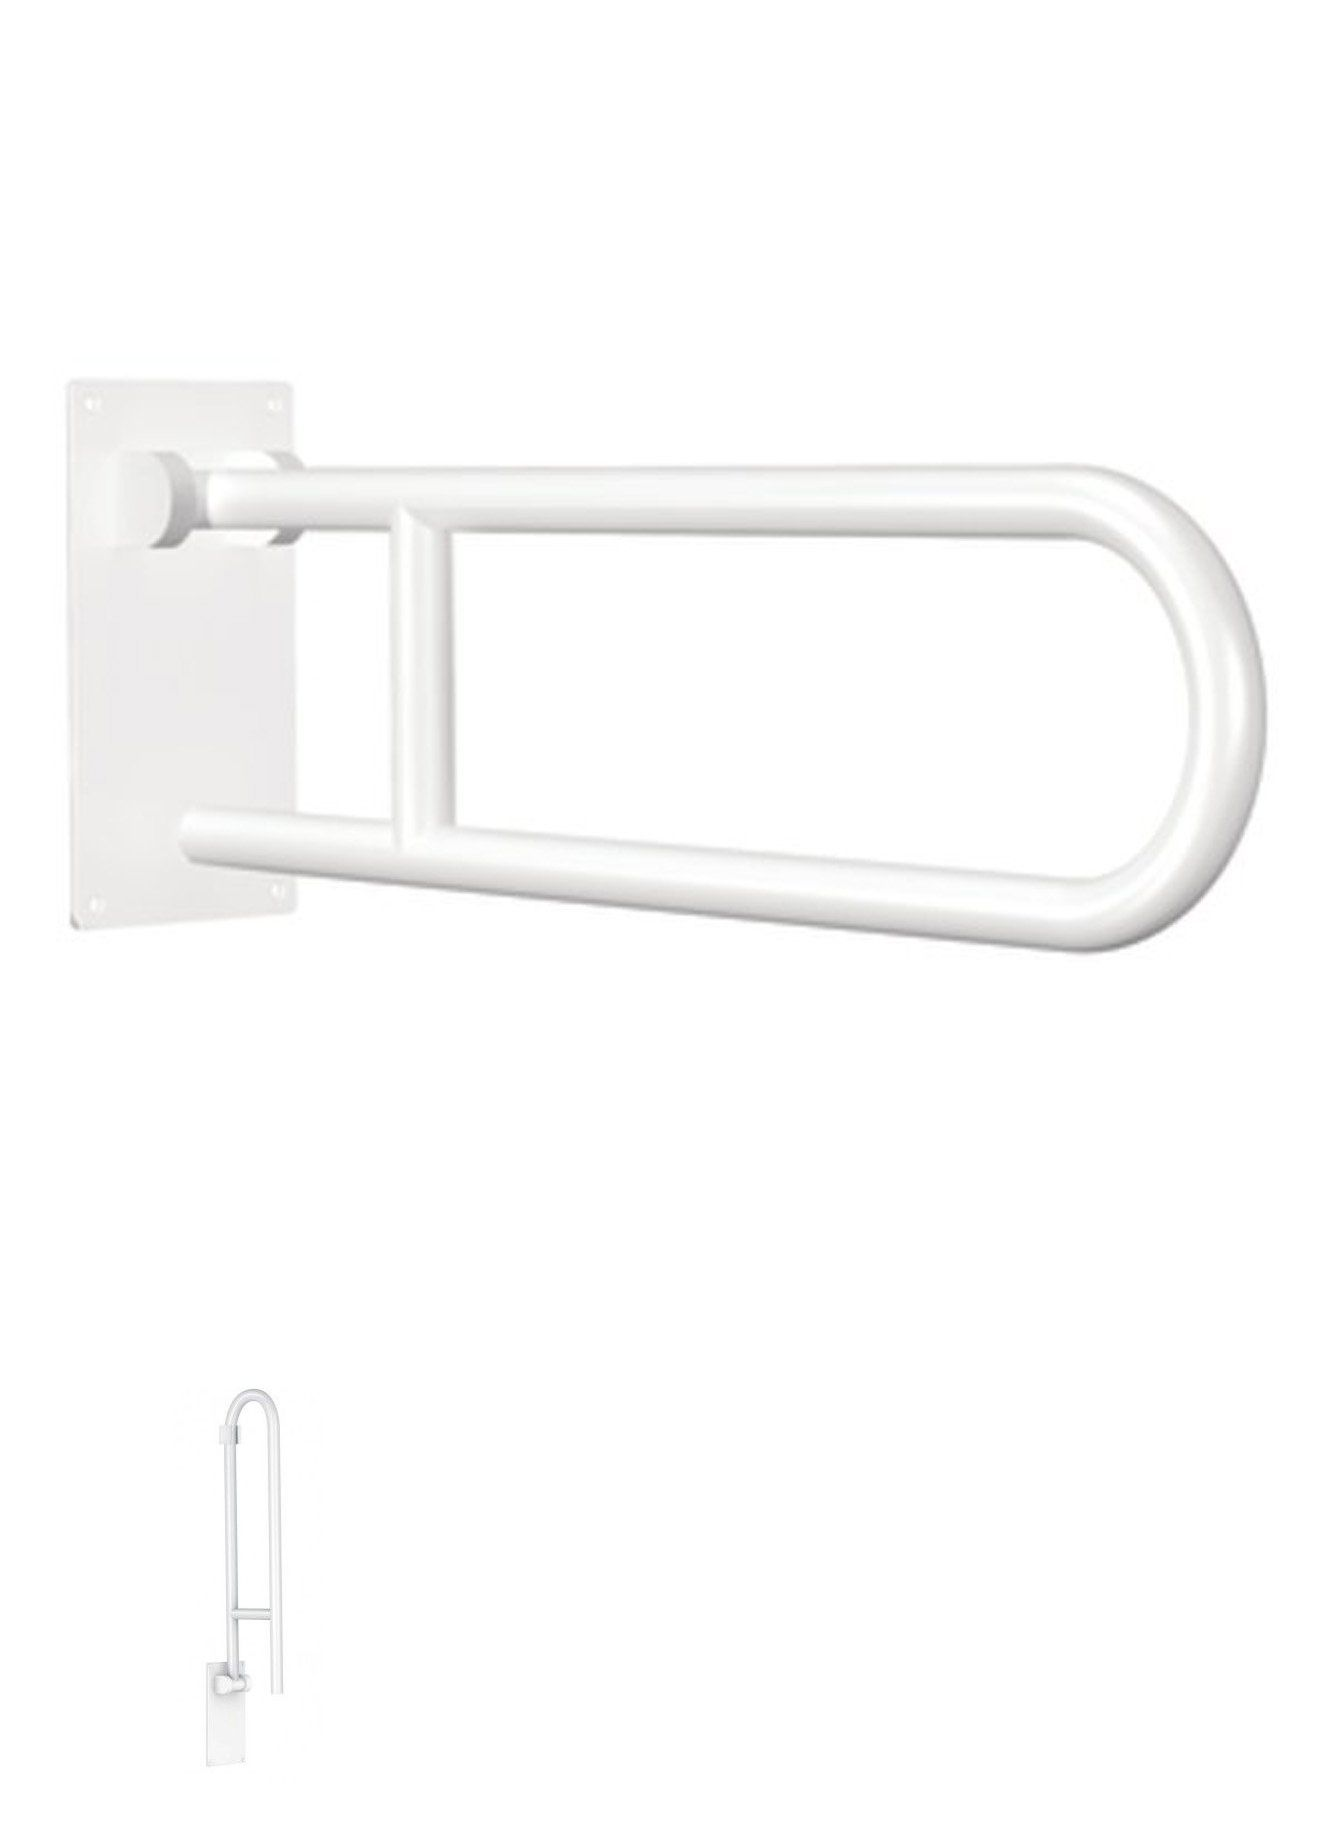 Handles and Rails: Handicap Shower Bars White Bathroom Safety ...